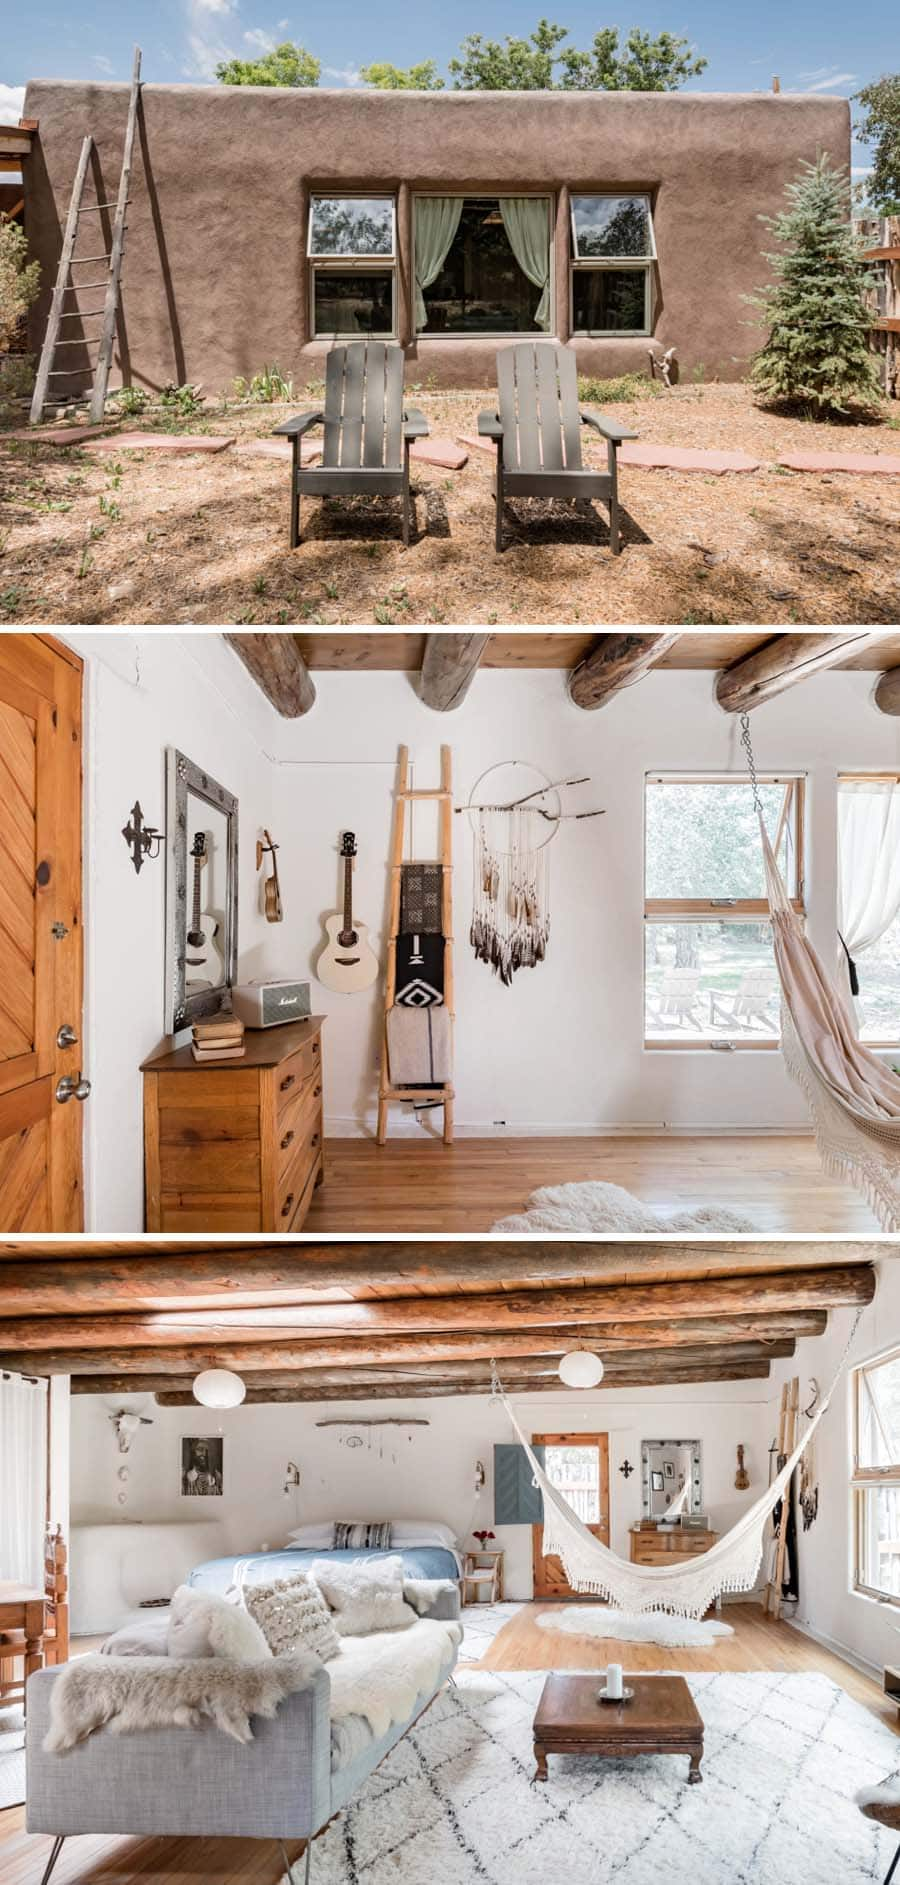 Bohemian style adobe Airbnb in Taos, New Mexico